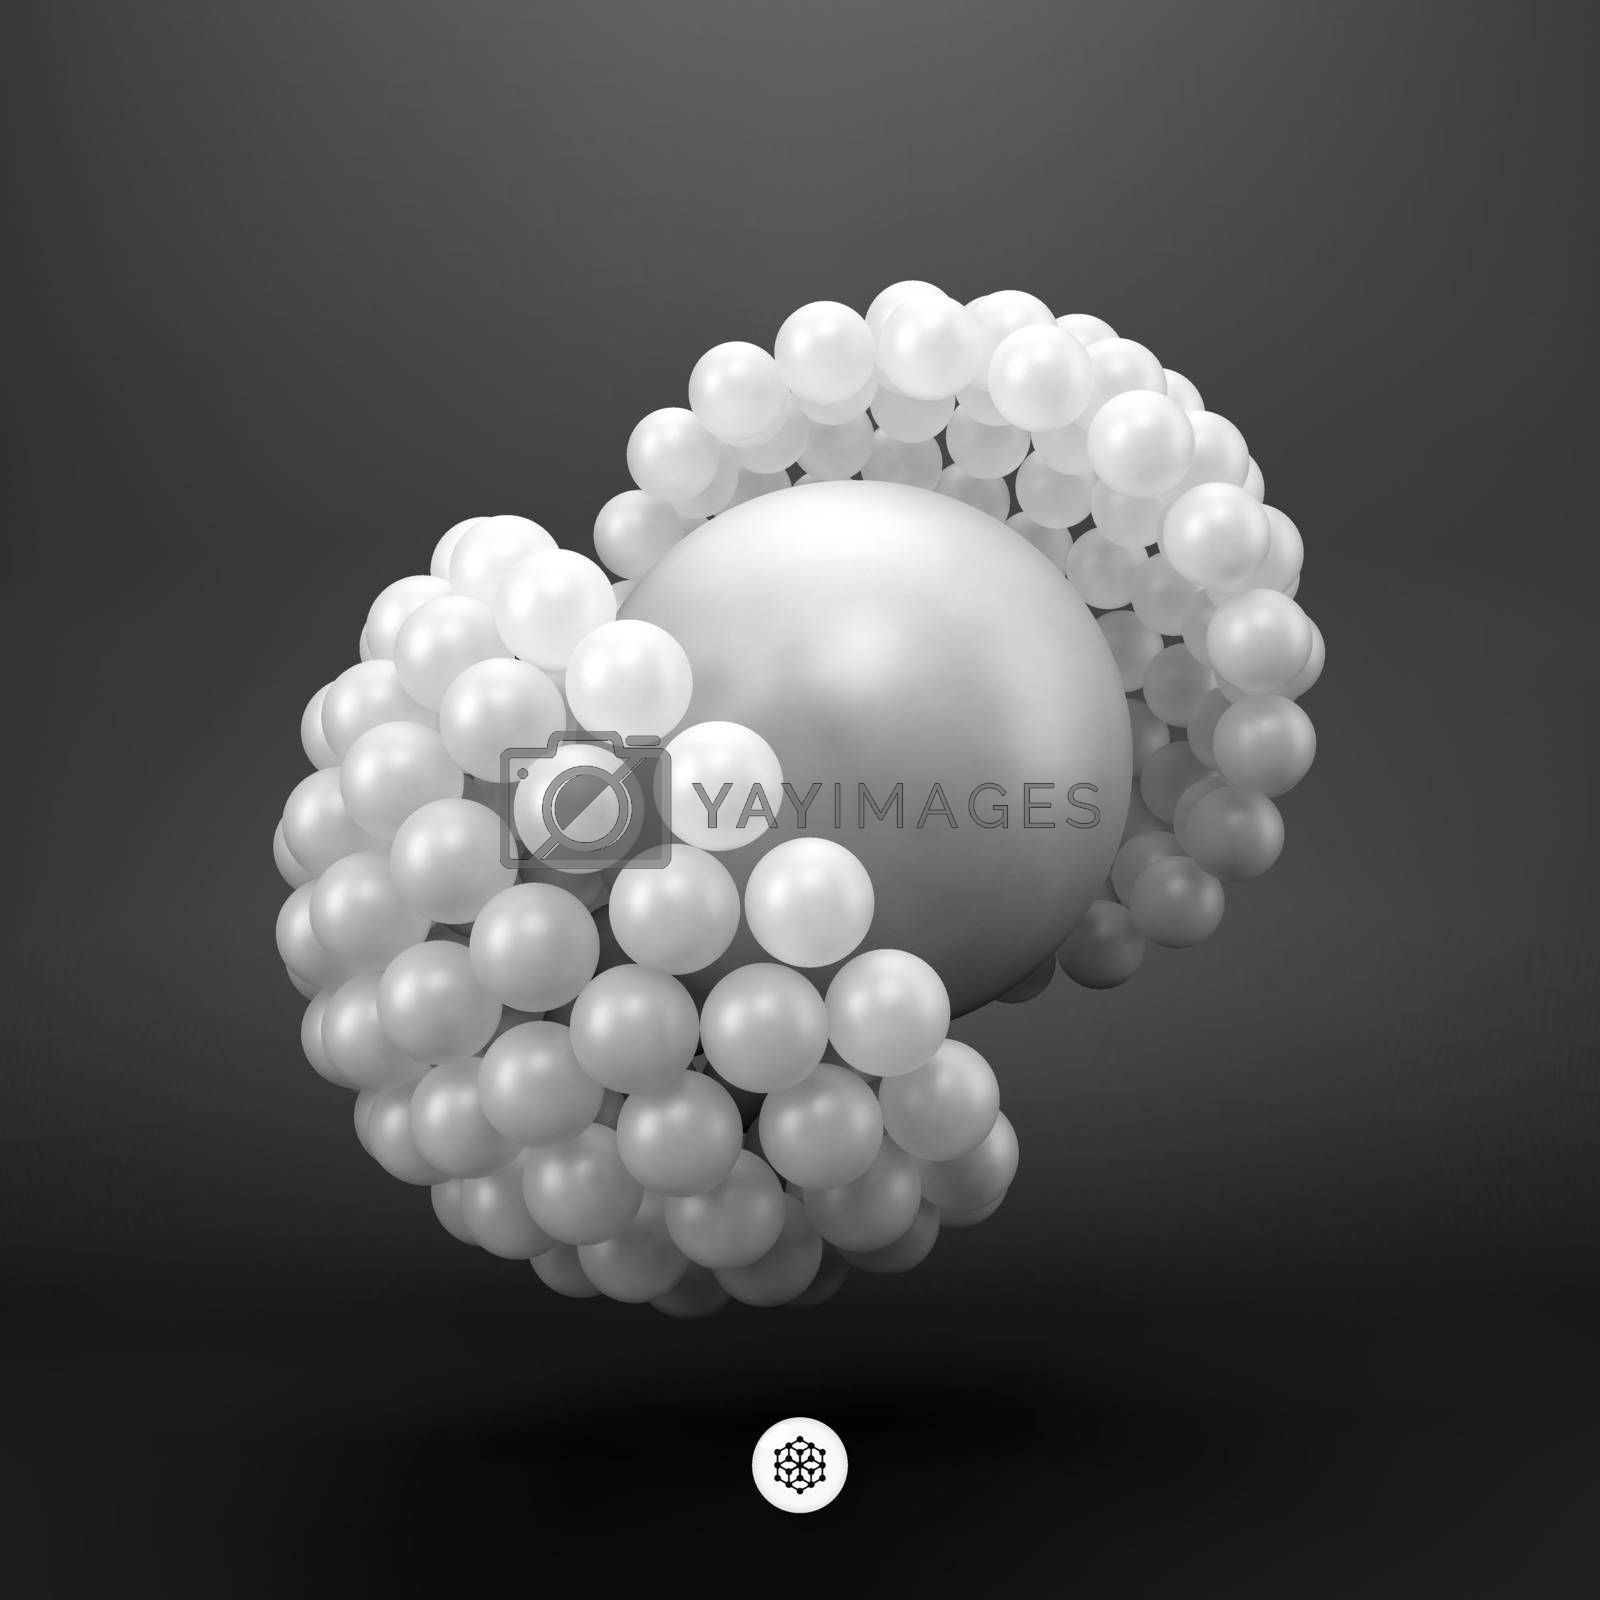 3d vector illustration. Concept for science, social media, technology, network and web design.